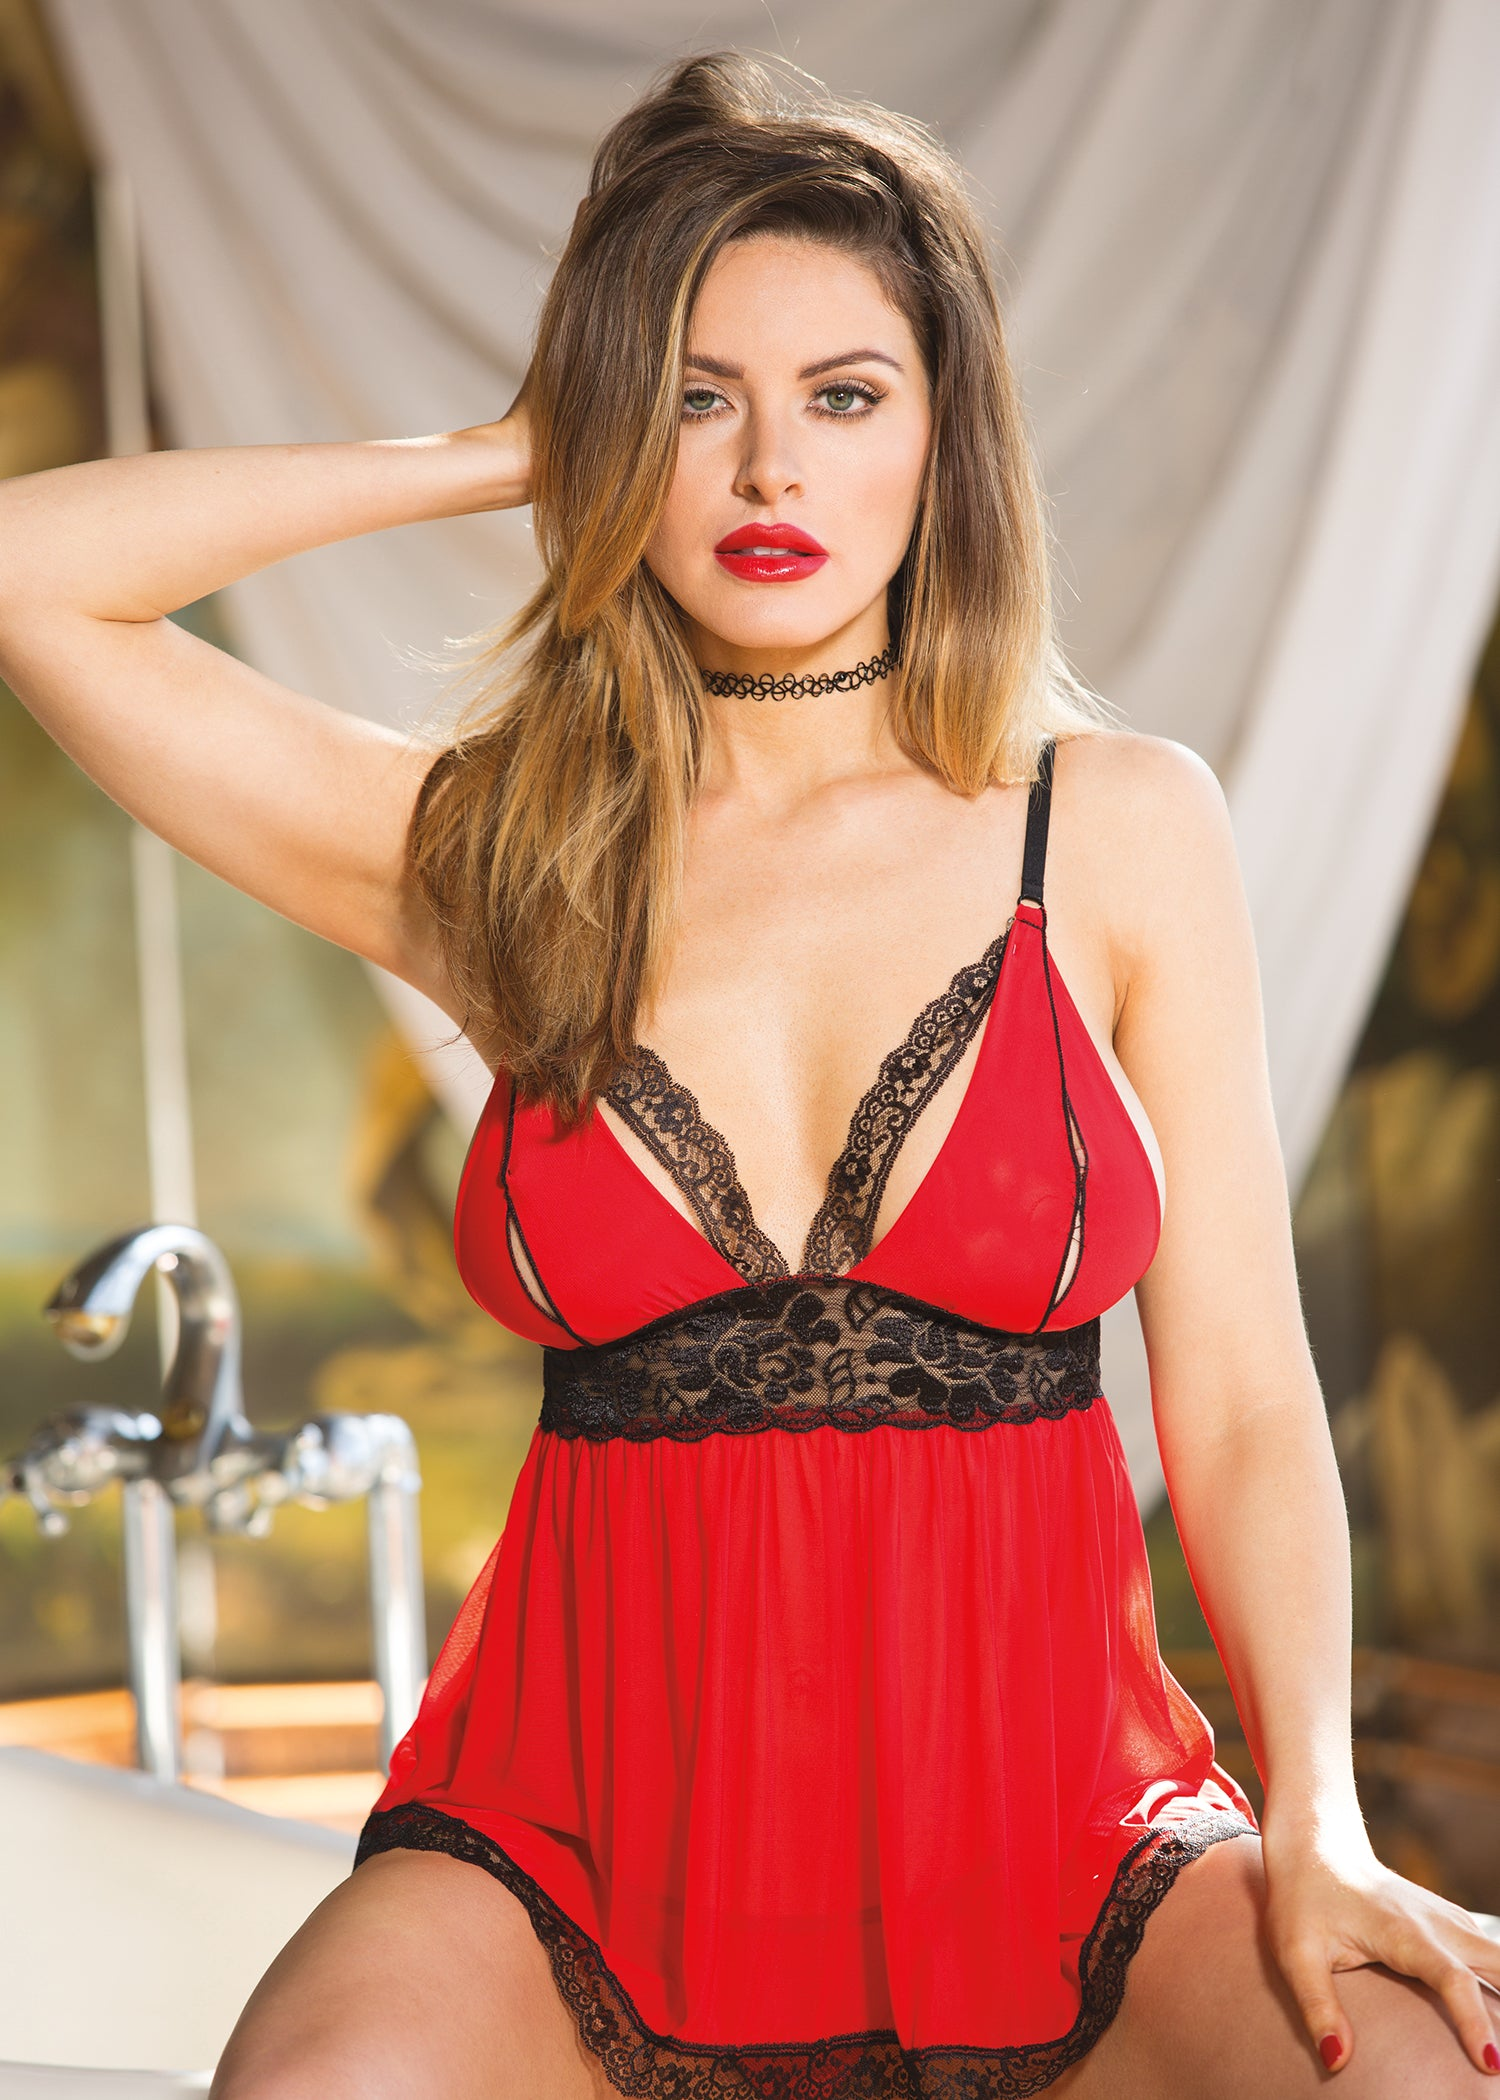 Stretch Knit & Stretch Lace Split Cup Baby Doll - One Size - Red & Black